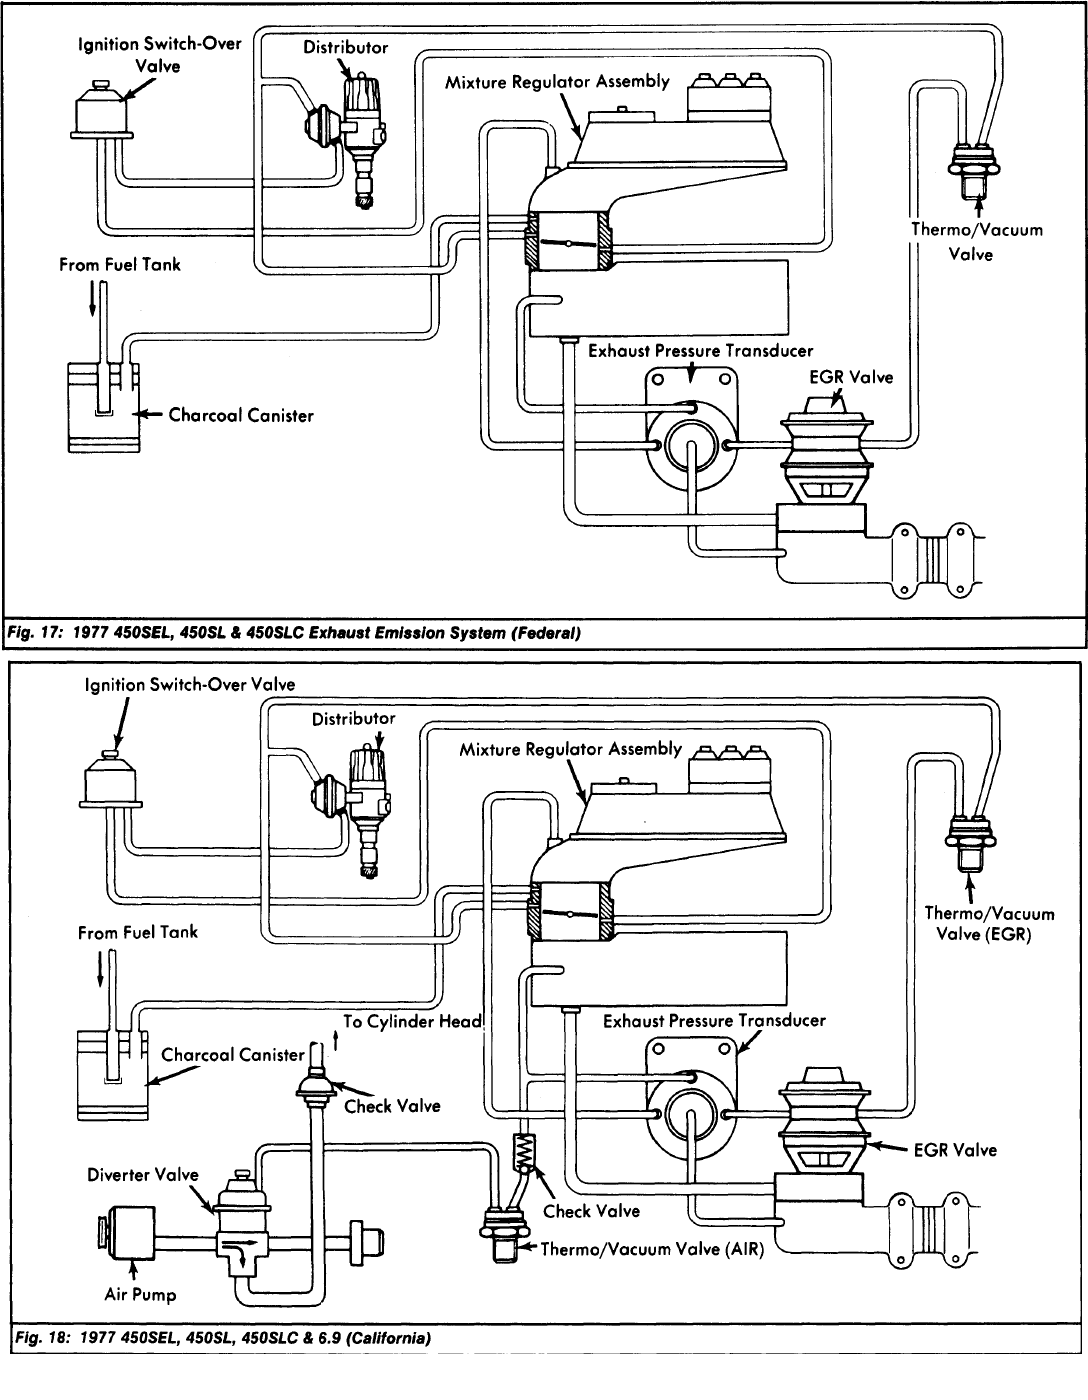 can you send me the diagram of the vacuum hose system in a ... sel engine wiring diagram free download schematic